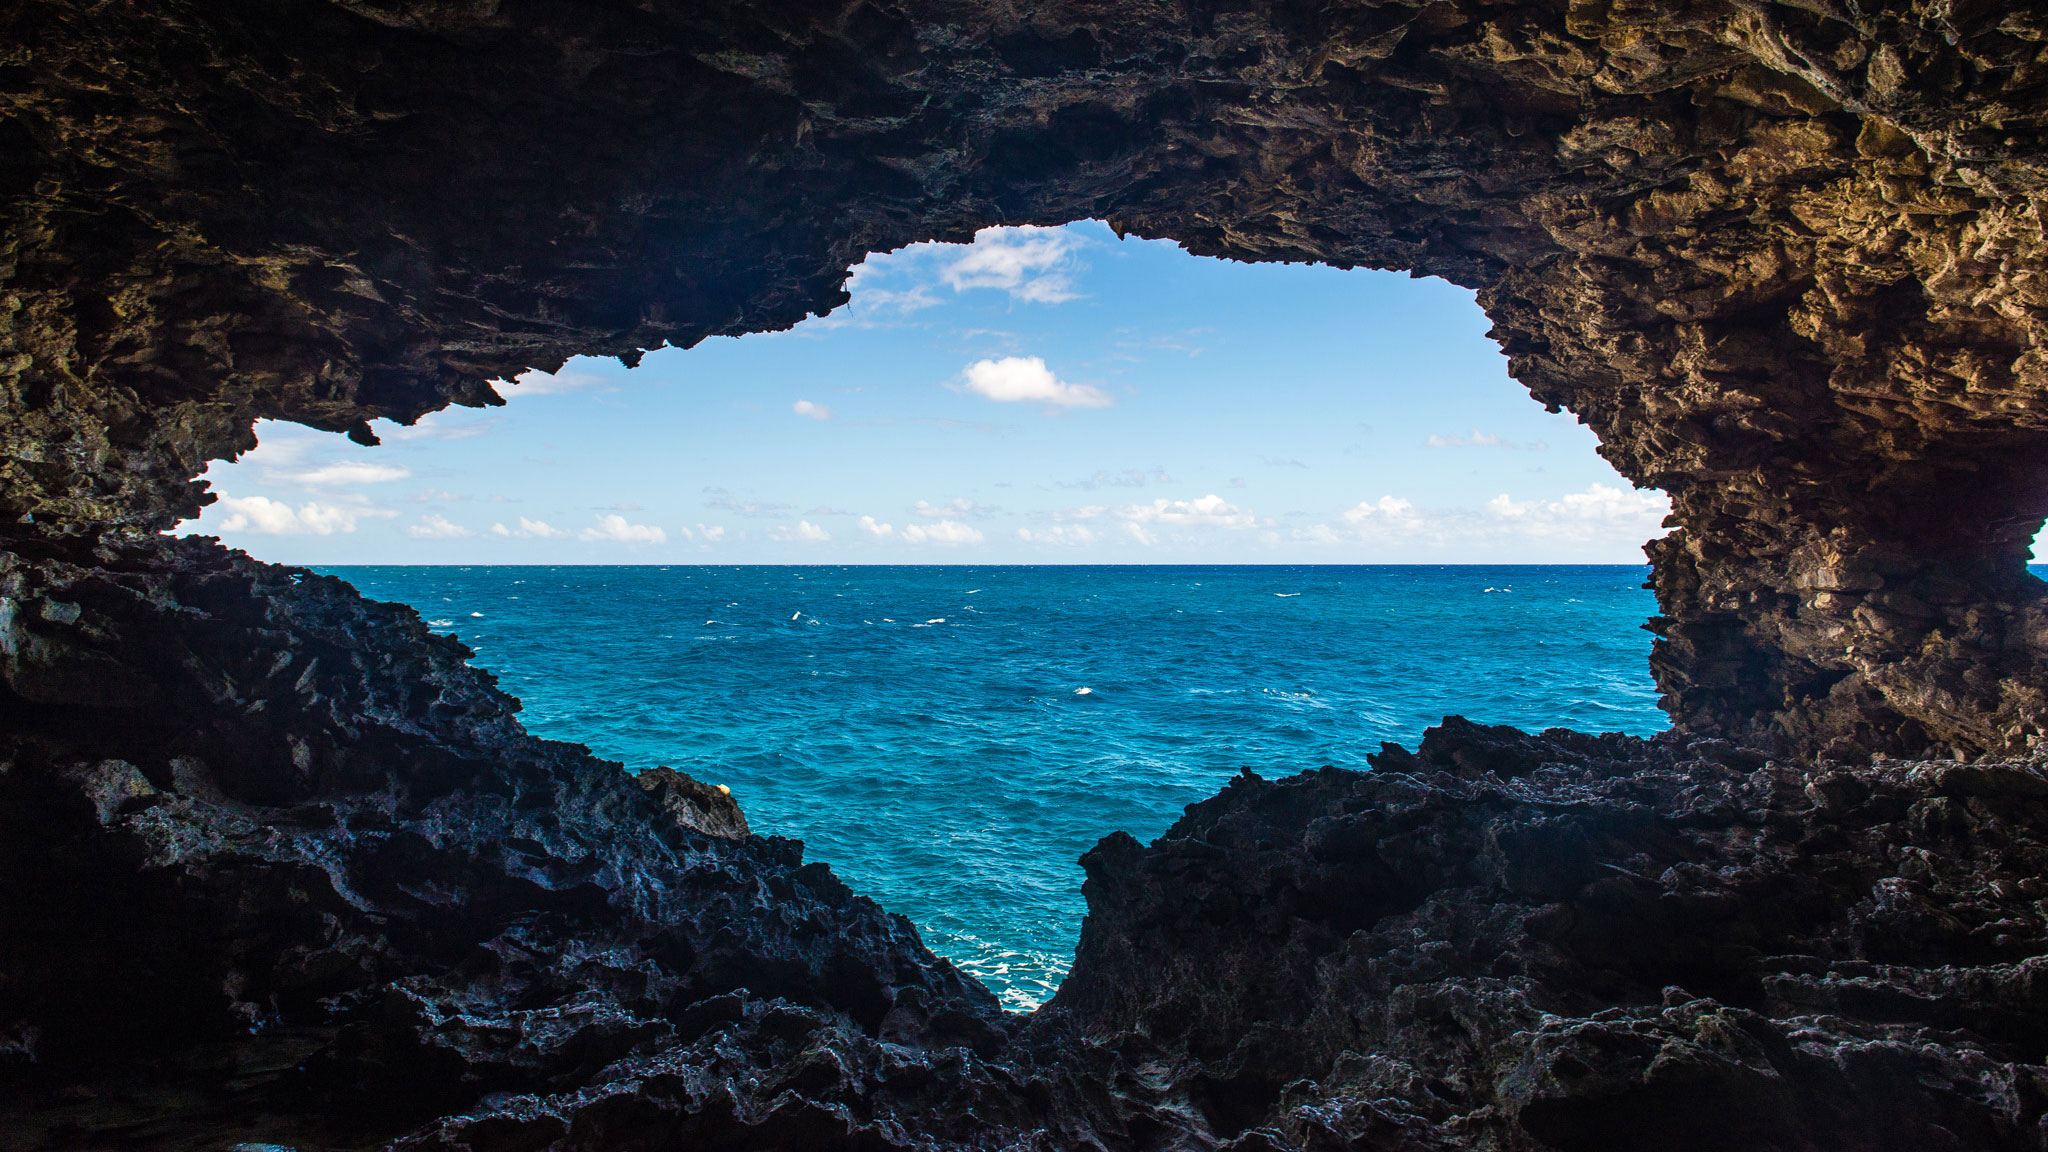 Animal Flower Cave, Barbados by Patrick Bennett